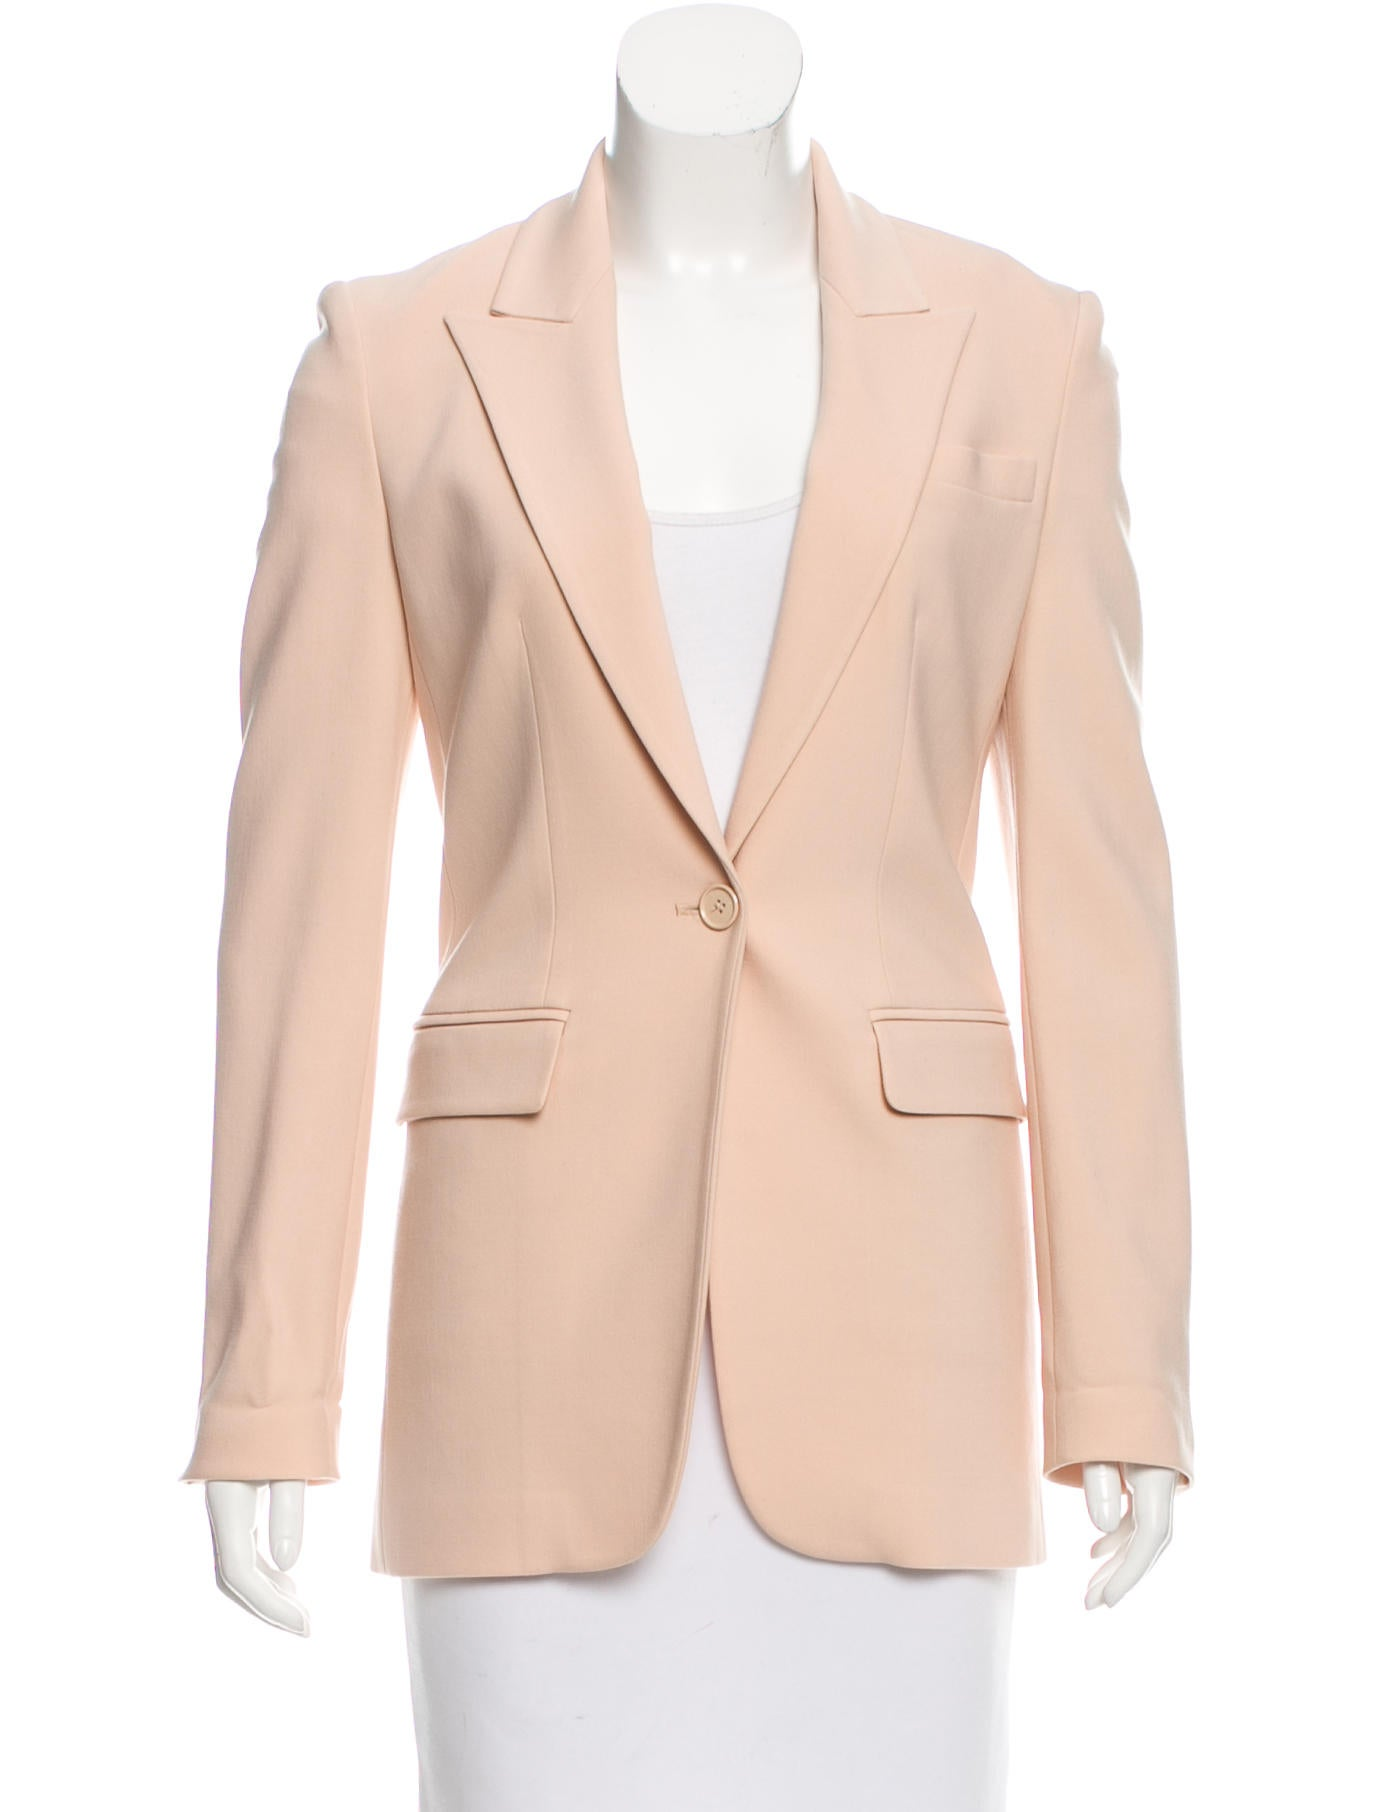 michael kors peak lapel button up blazer clothing mic48372 the realreal. Black Bedroom Furniture Sets. Home Design Ideas